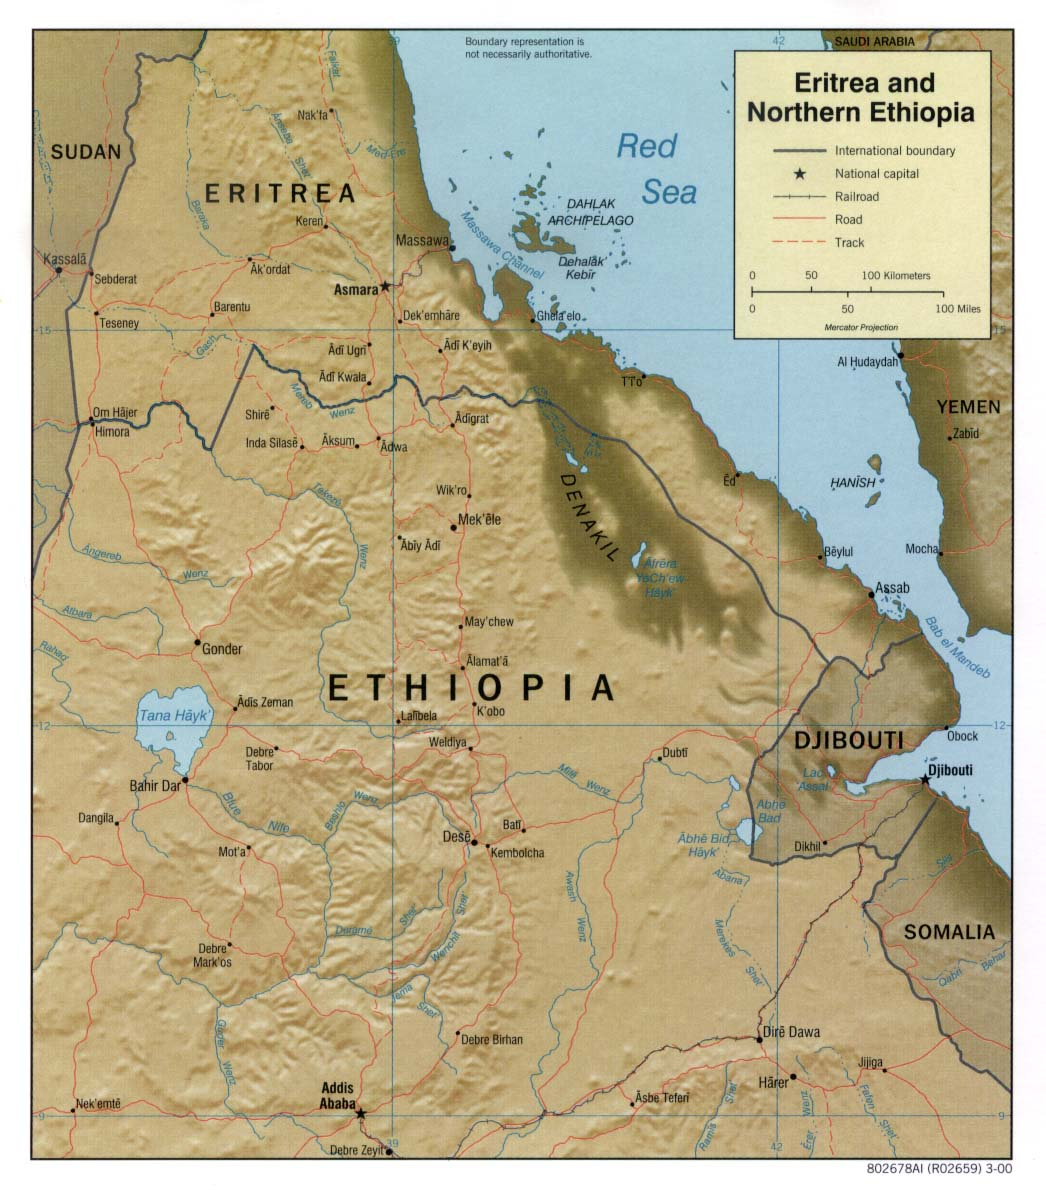 major problems in ethiopia and eritrea history essay Introduction and background of conflict it would not have been possible to foresee the breaking out of an all out war between neighbors who were former enemies but who had considerably solved the problems between themselves and assumed a brotherly existence - the war between ethiopia and eritrea: examination of the border.